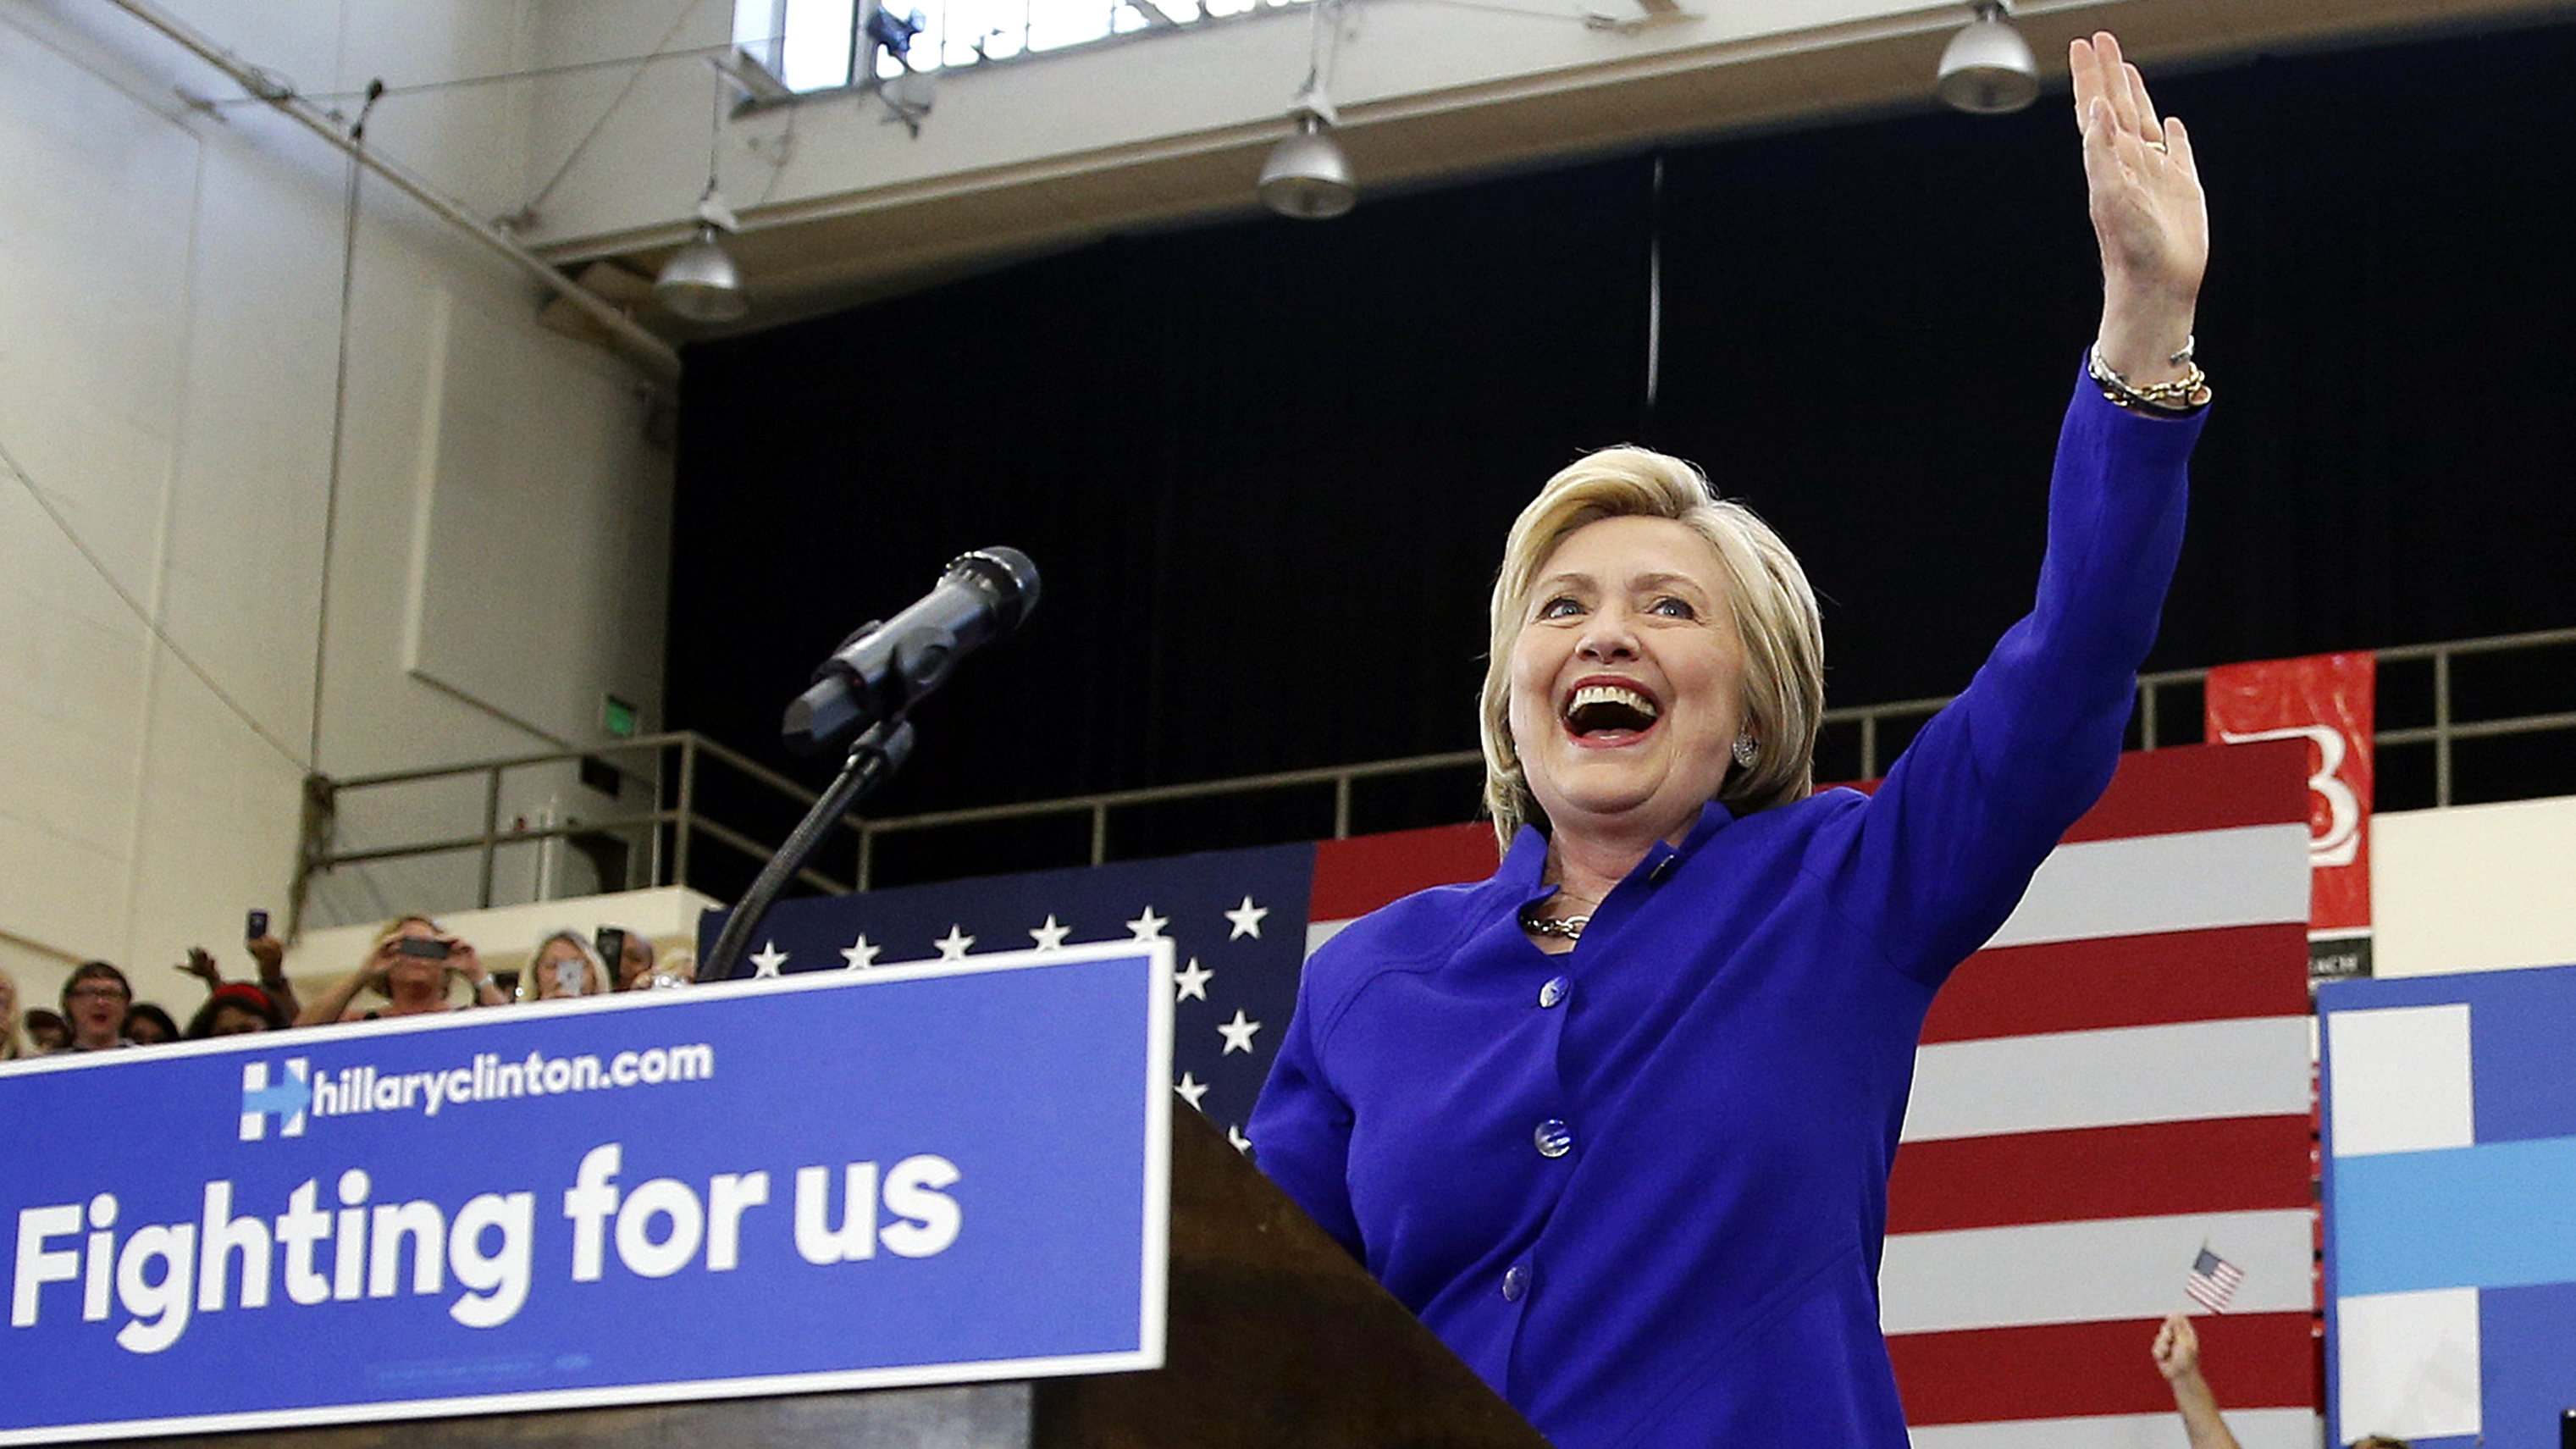 Democratic presidential candidate Hillary Clinton, left, reacts as she takes the stage with Robert Garcia, mayor of the City of Long Beach, at a rally, Monday, June 6, 2016, in Long Beach.